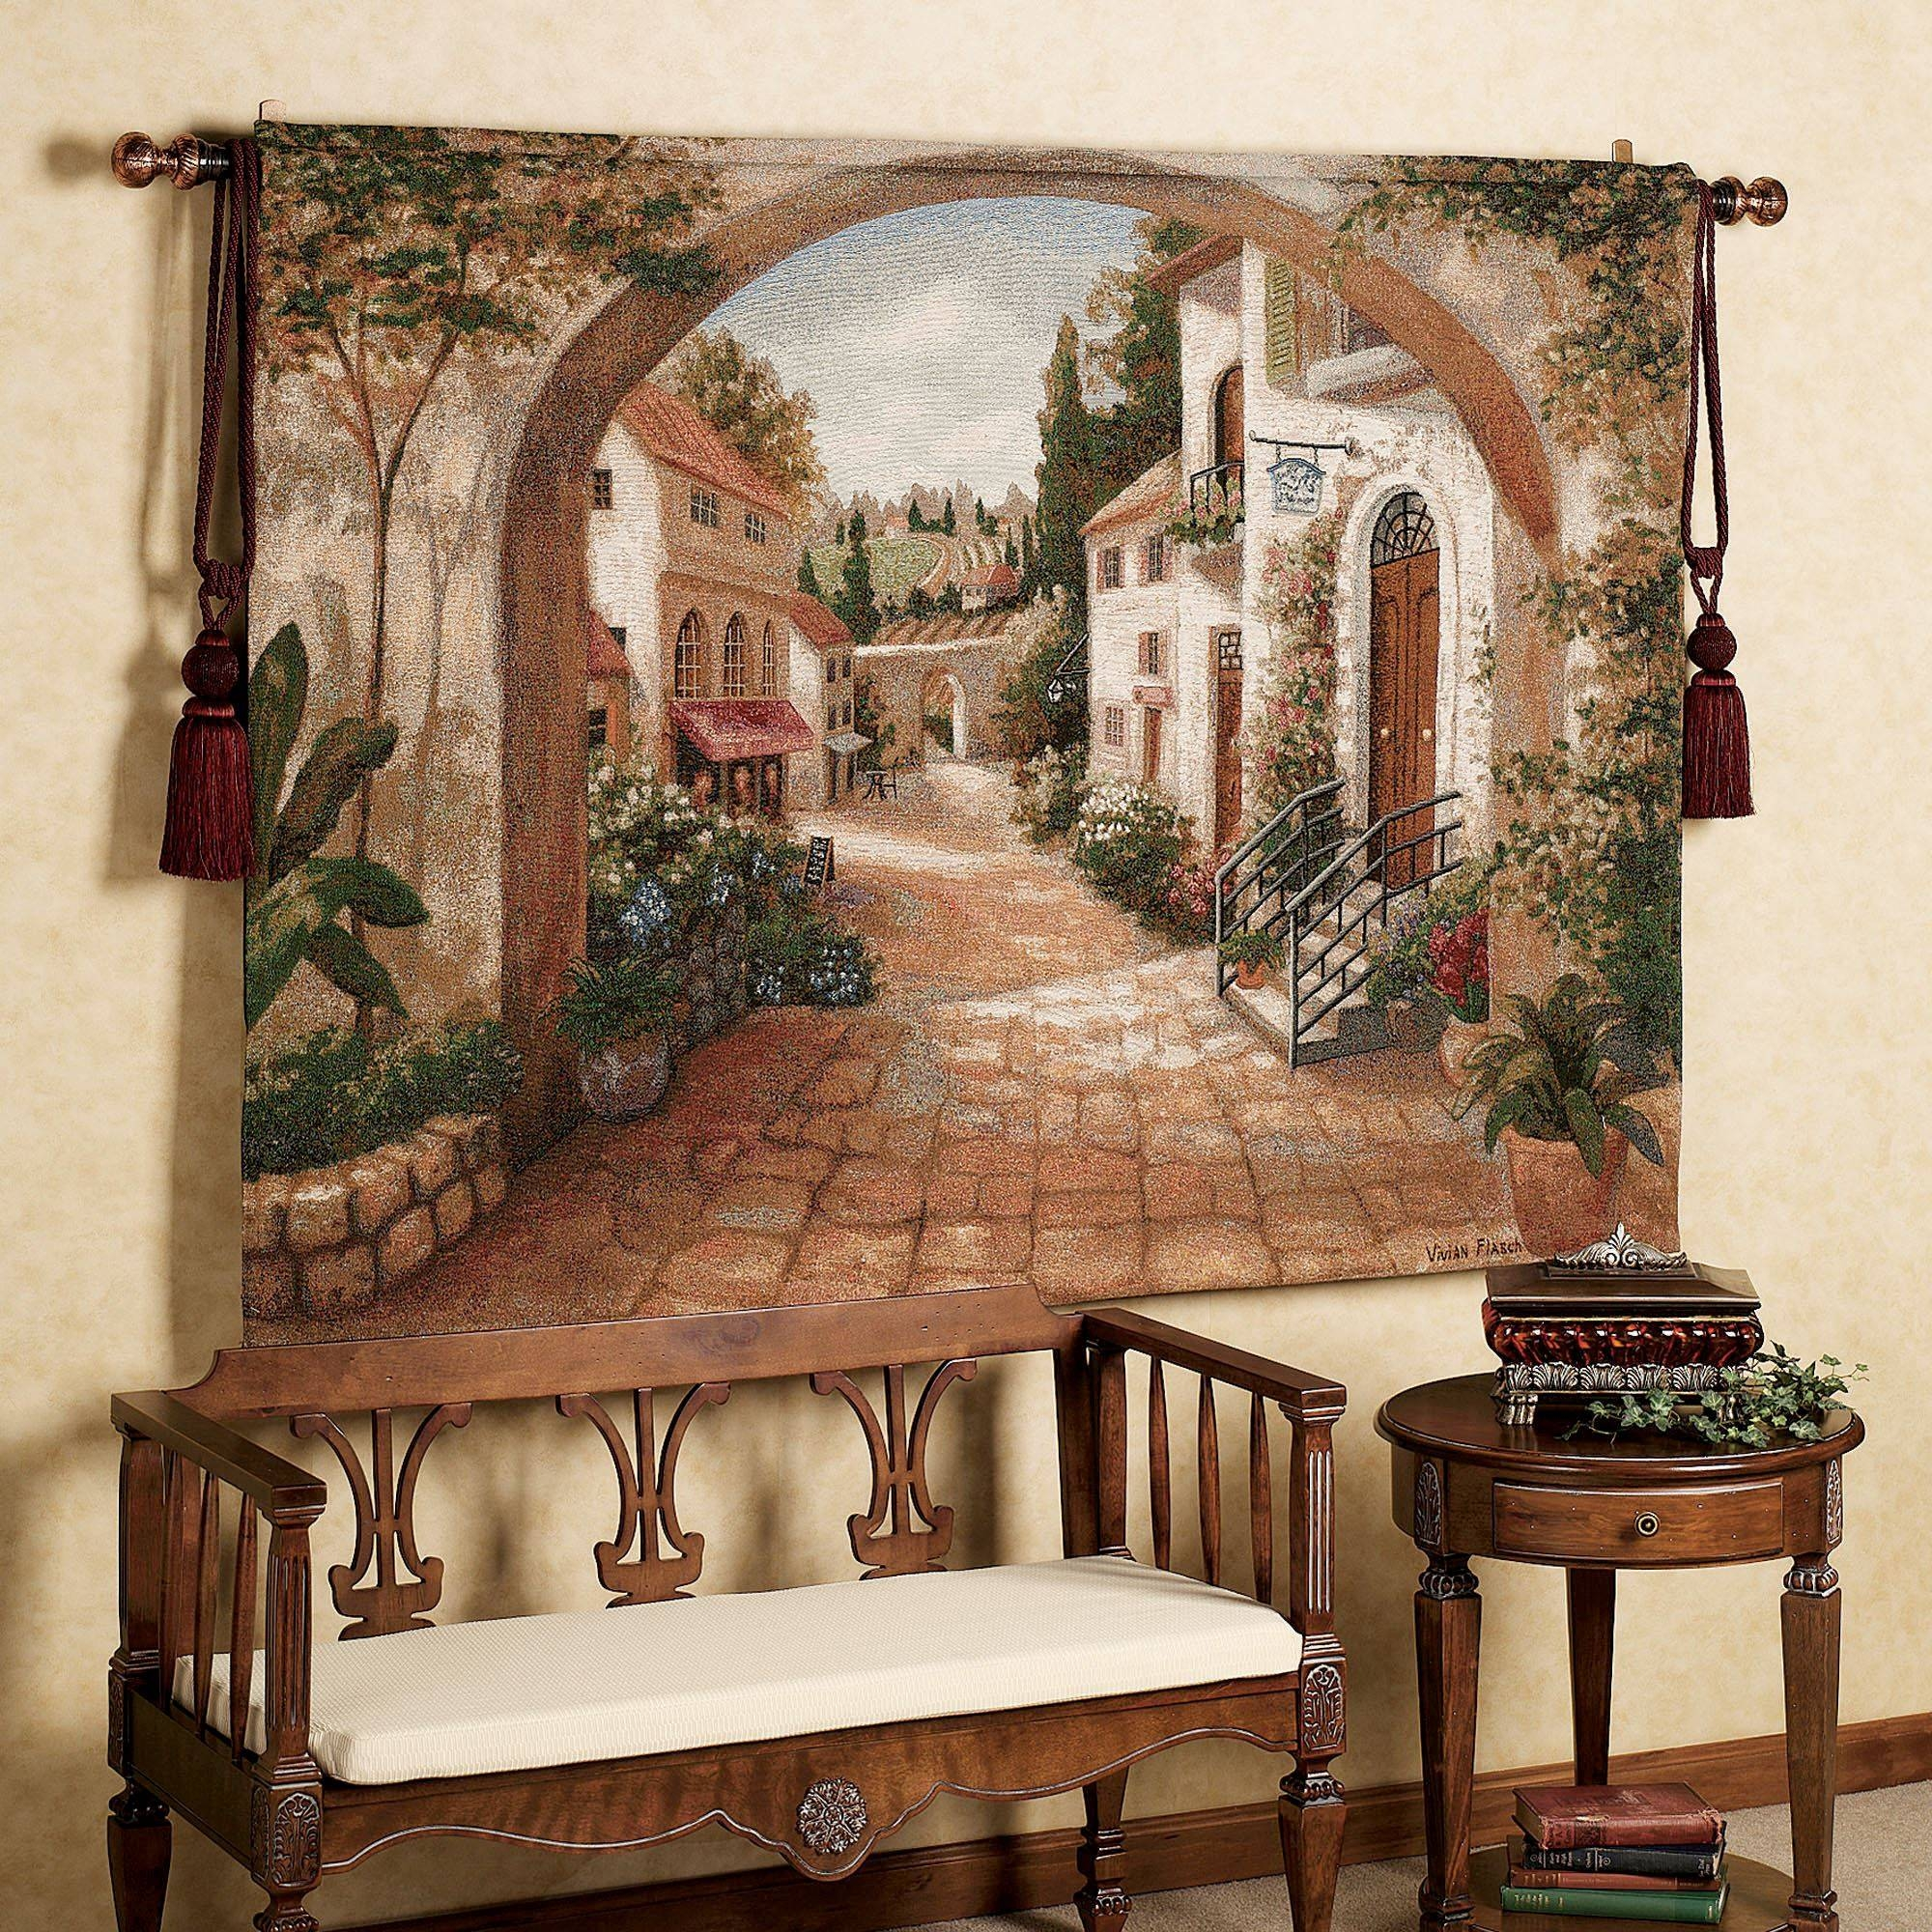 Tuscan Wall Art Simply Simple Italian Wall Decor – Home Decor Ideas Inside Most Up To Date Tuscan Wall Art Decor (View 8 of 20)